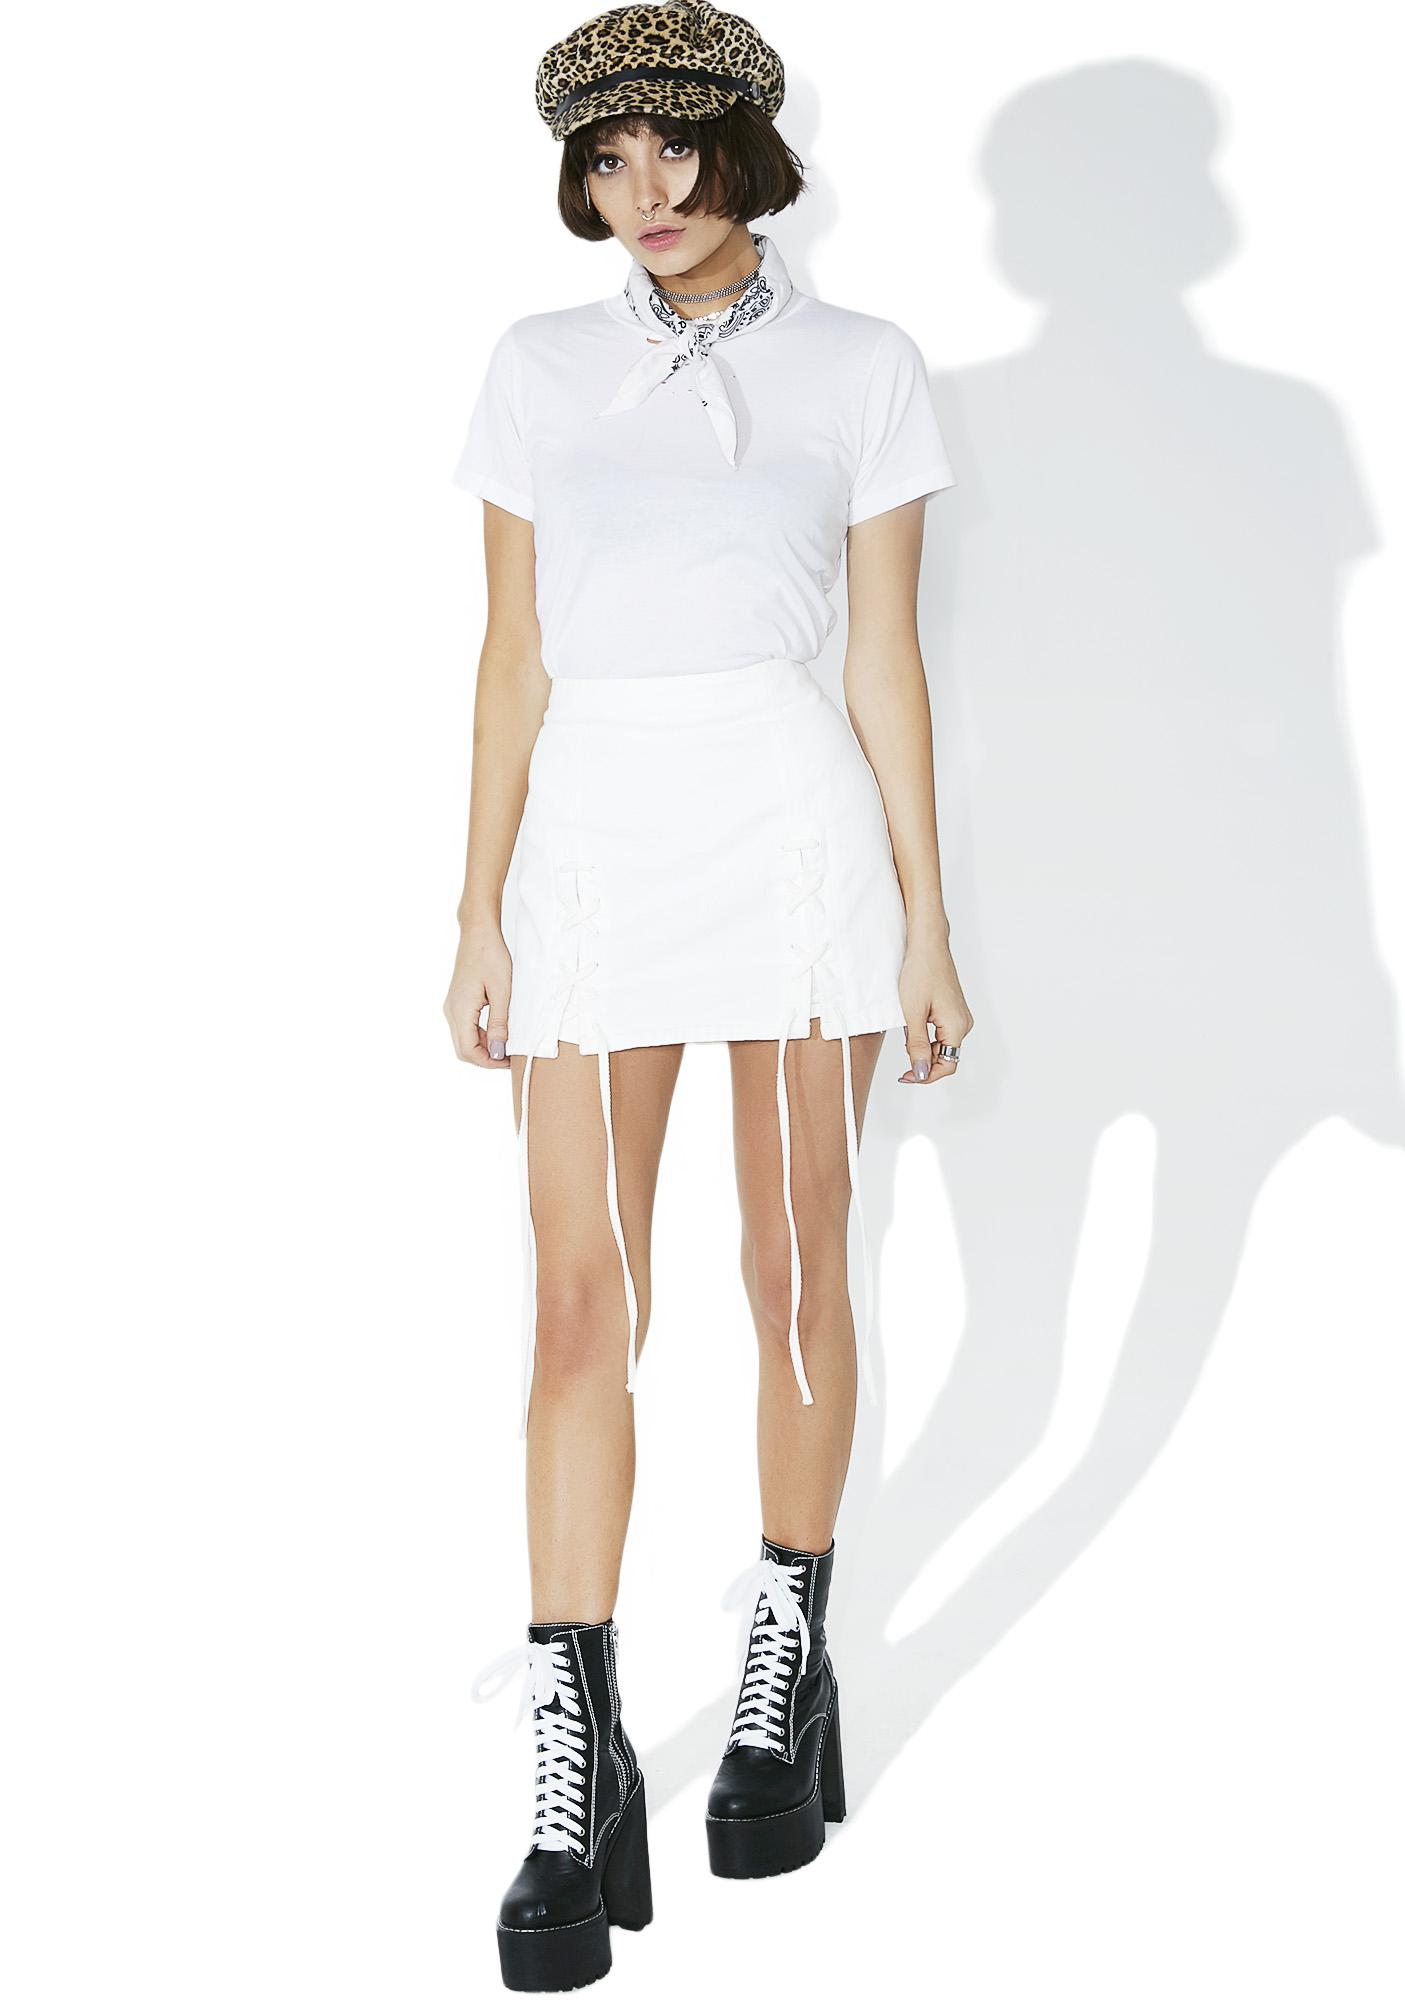 Angelic I Want Action Lace-Up Skirt